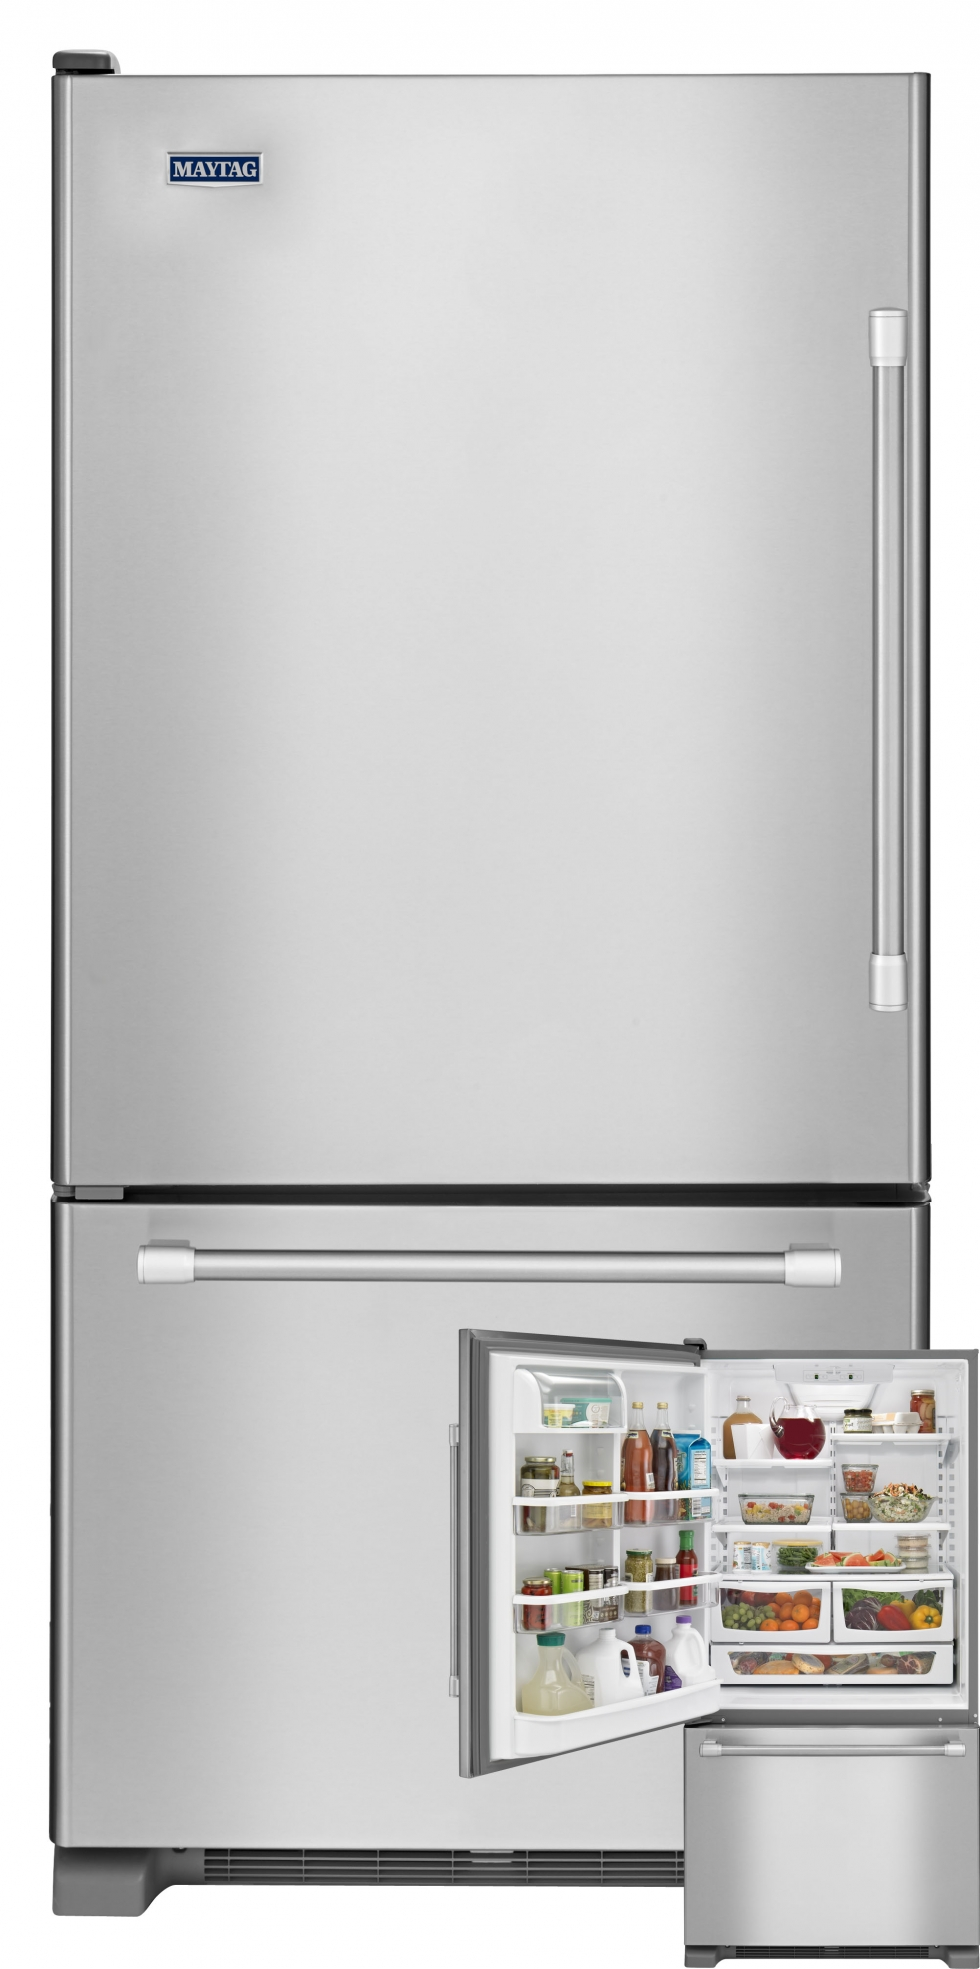 Maytag Bottom Freezer Refrigerator Stainless Steel Start